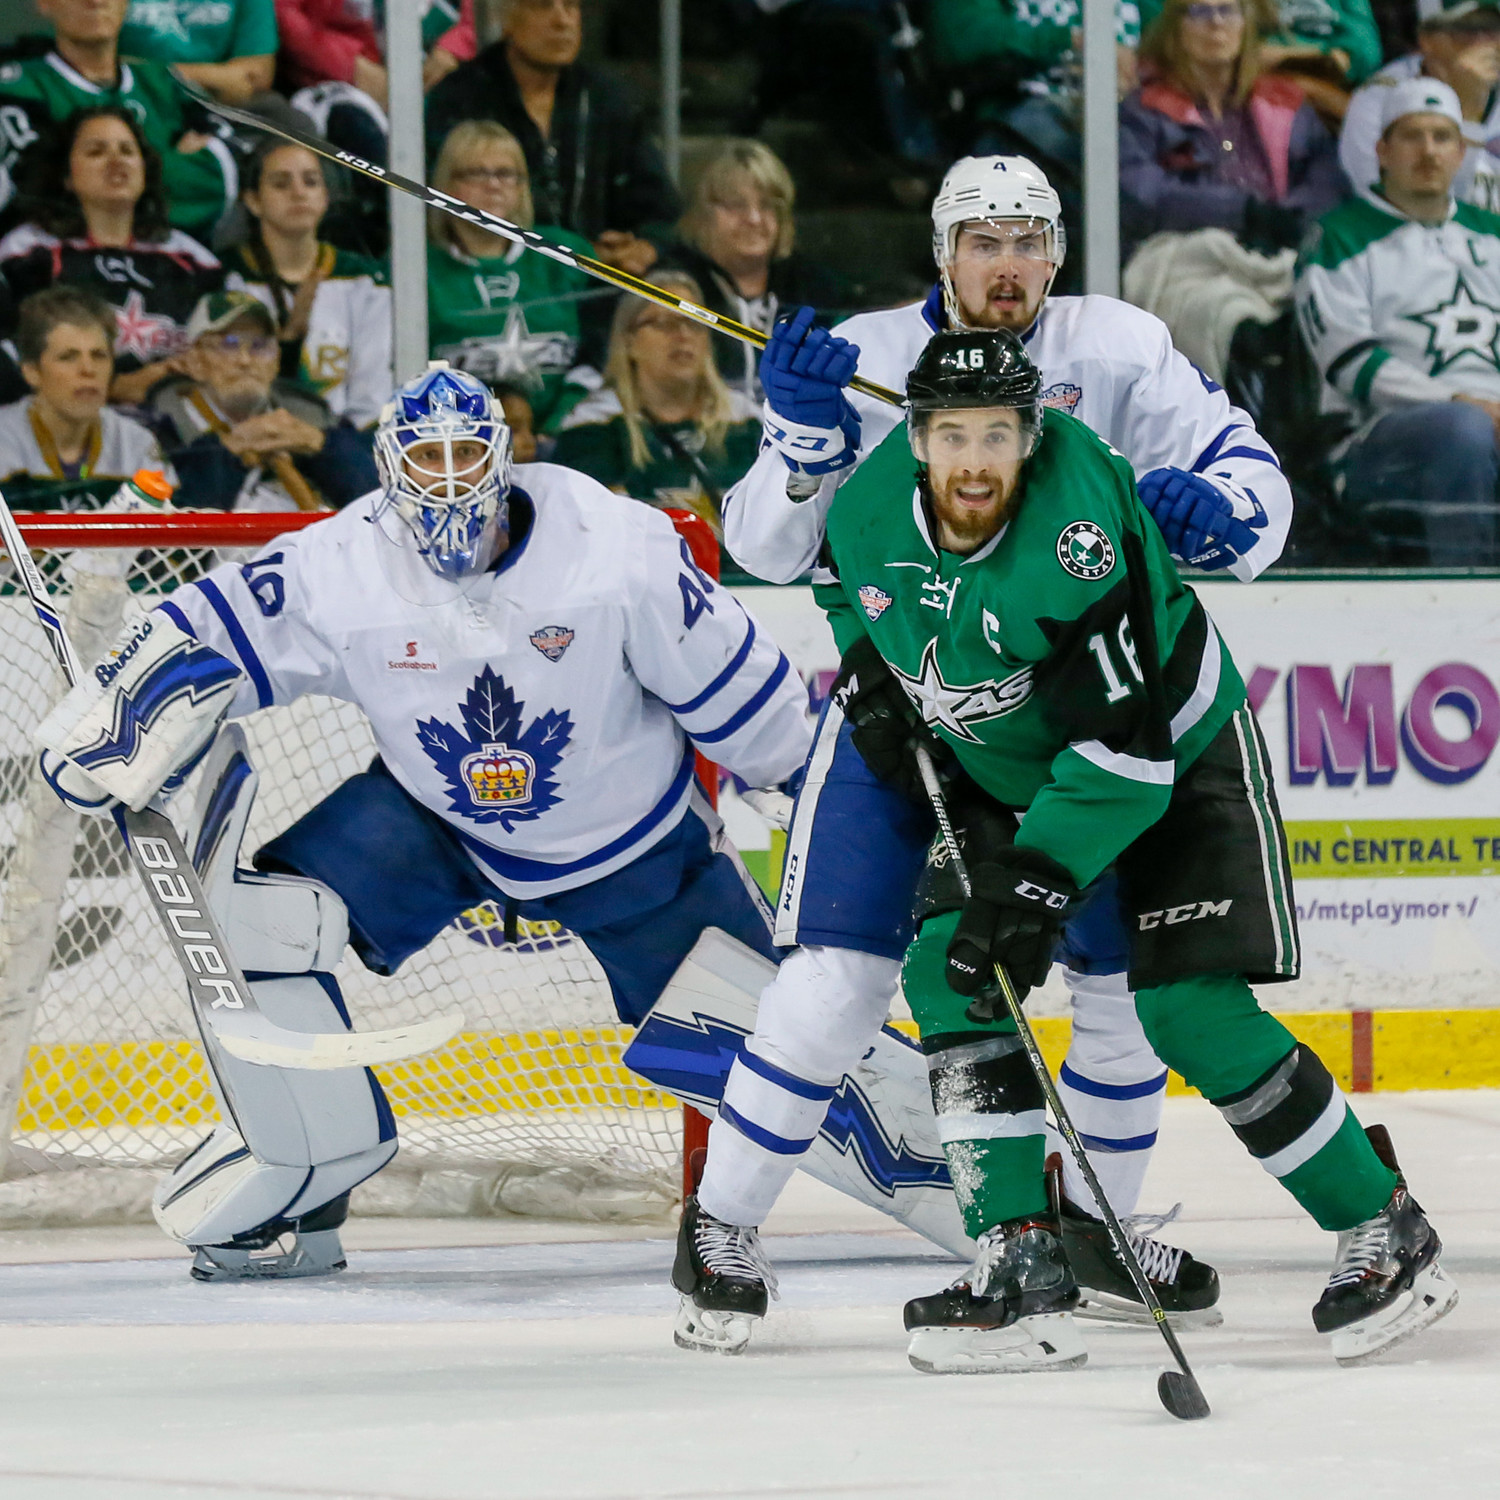 Curtis McKenzie and the Stars lost to the Toronto Marlies 6-2 in Game 5 of the Calder Cup Finals on Saturday night.